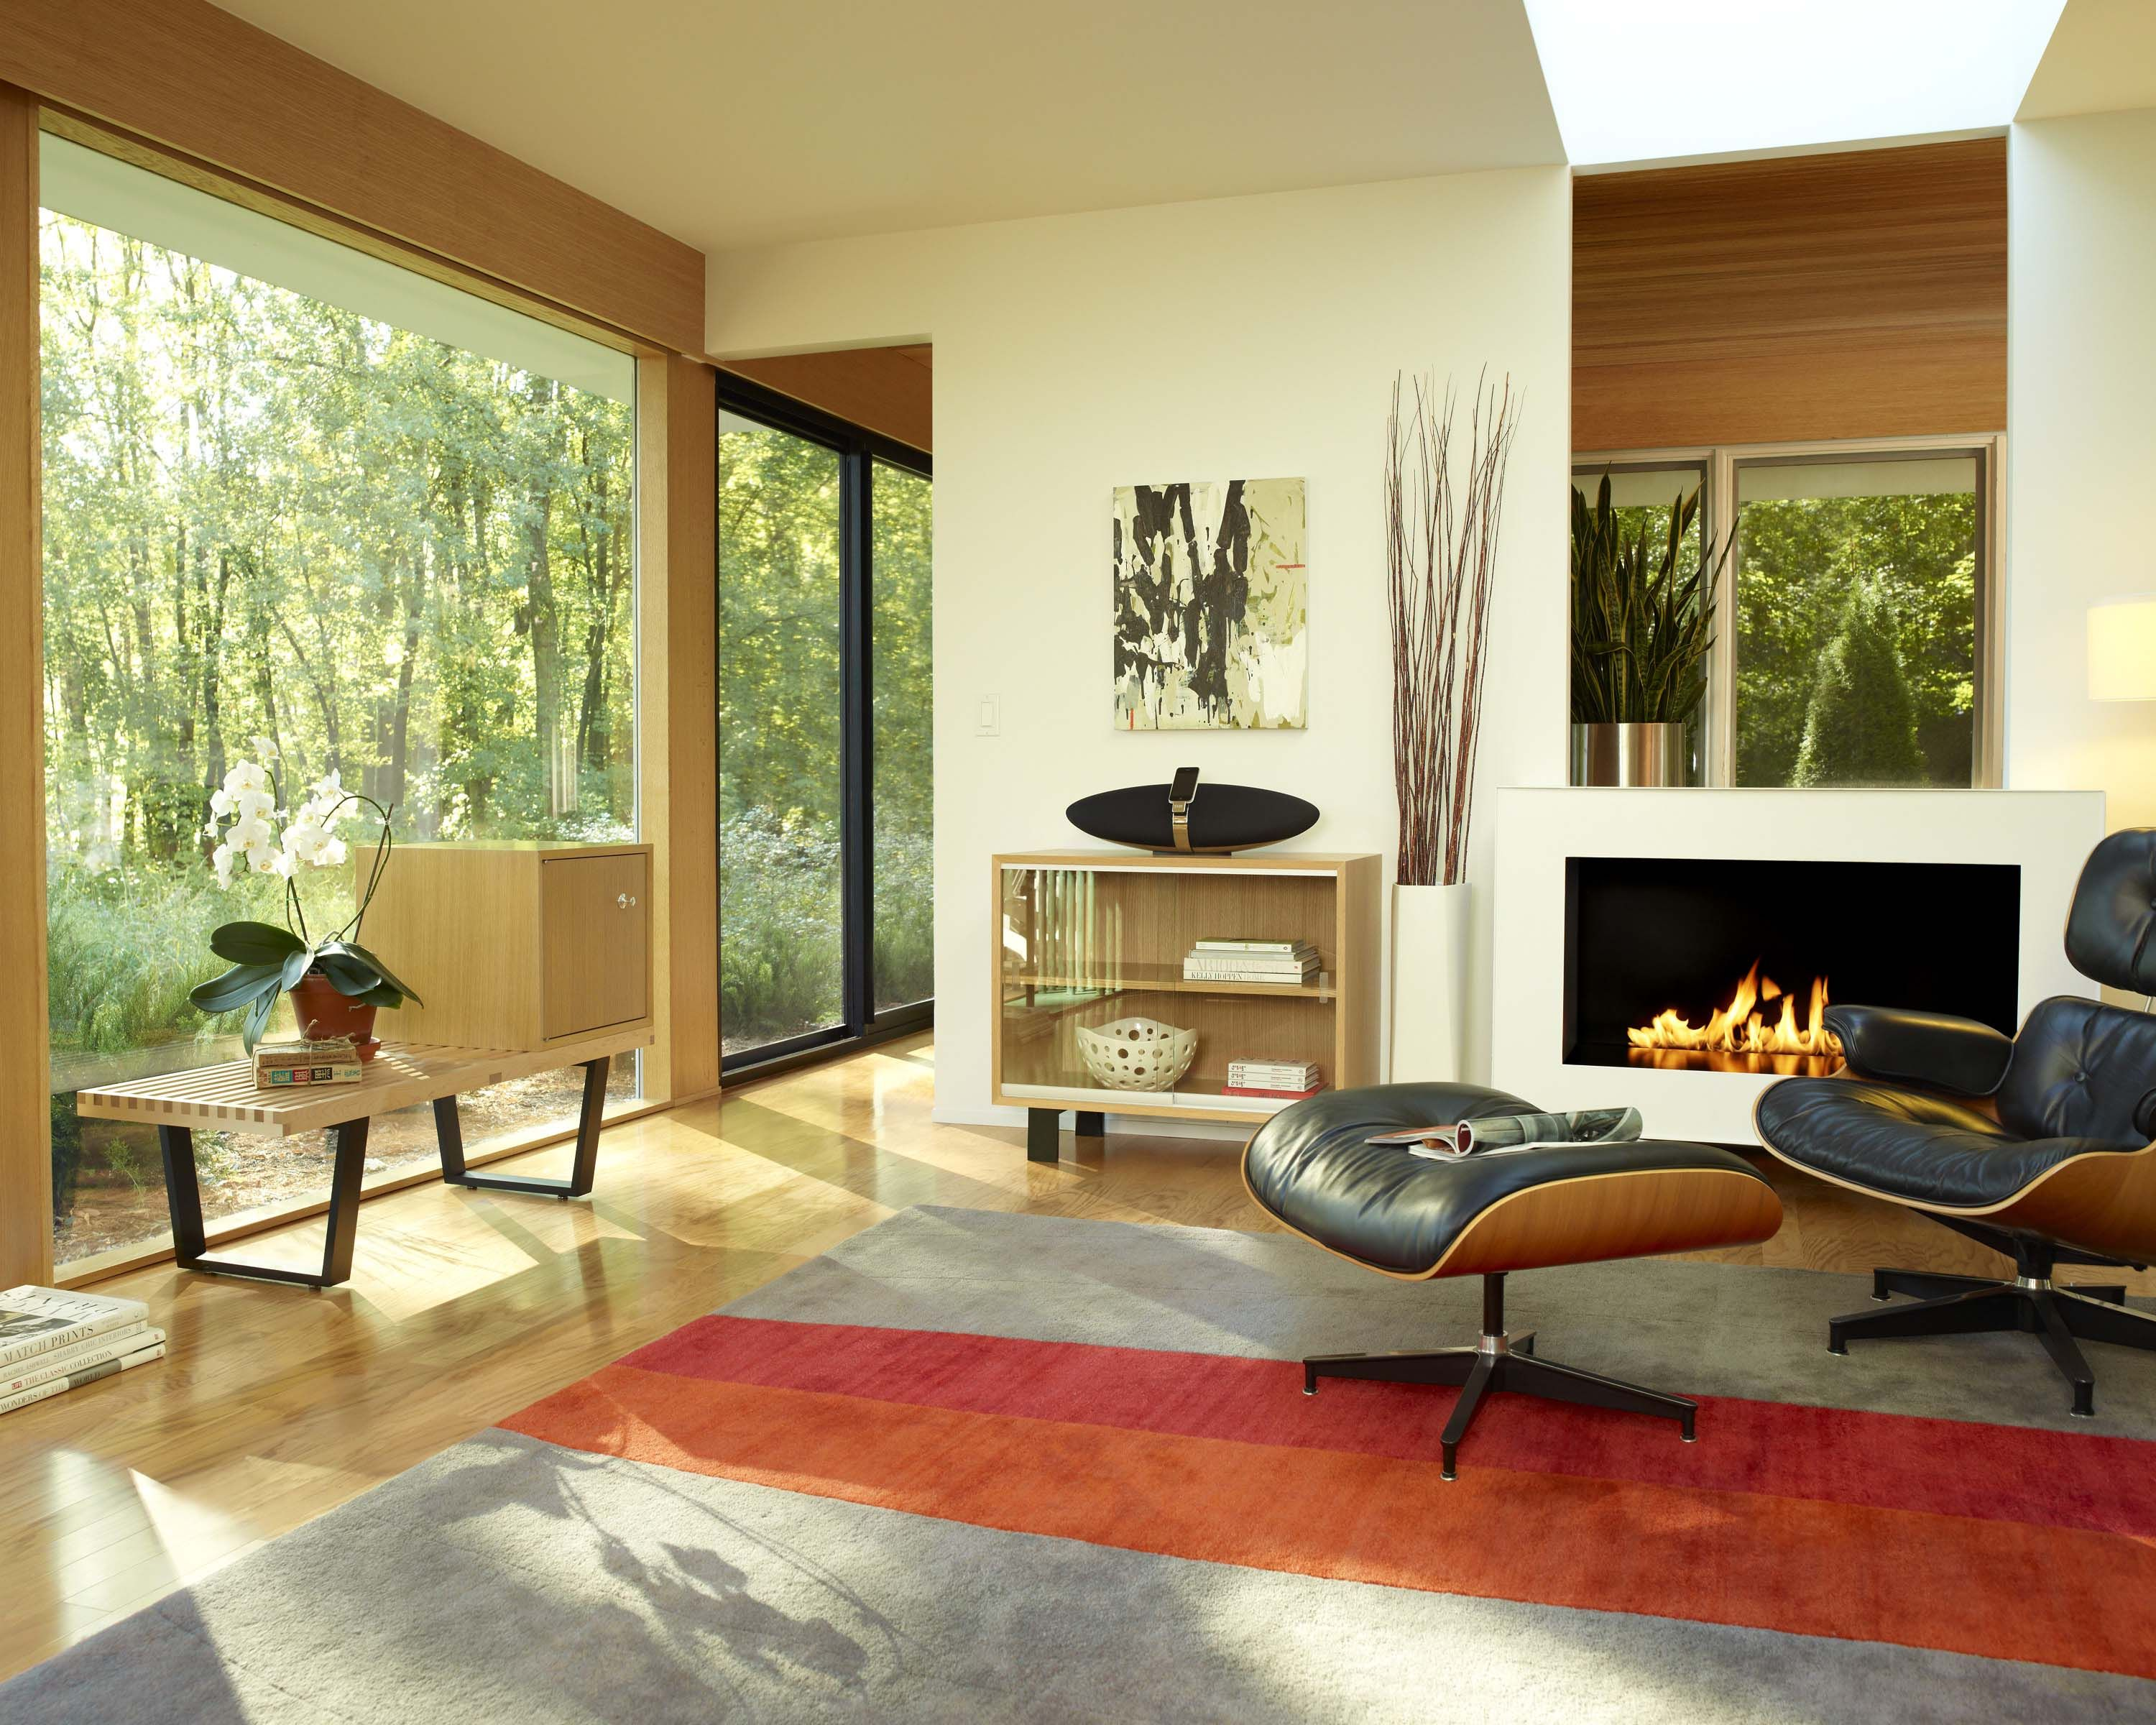 Beautiful modern interior design eames lounge chair and